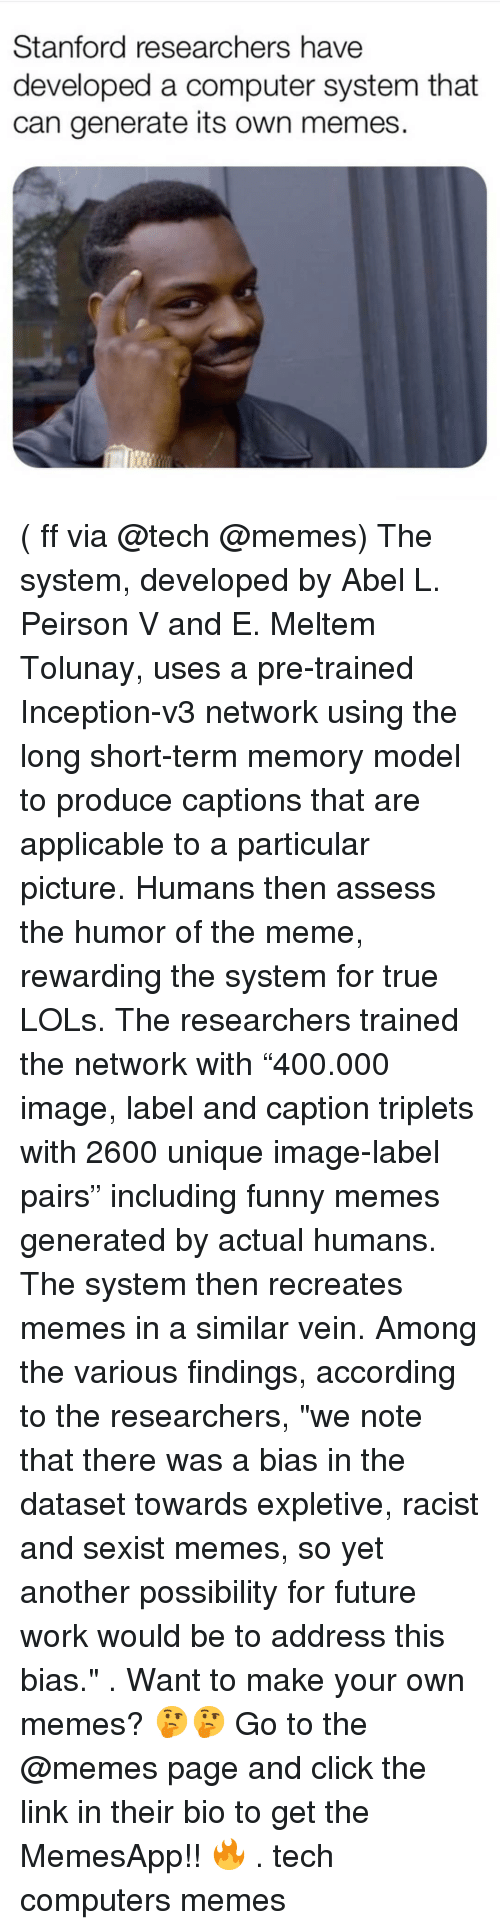 """assess: Stanford researchers have  developed a computer system that  can generate its own memes ( ff via @tech @memes) The system, developed by Abel L. Peirson V and E. Meltem Tolunay, uses a pre-trained Inception-v3 network using the long short-term memory model to produce captions that are applicable to a particular picture. Humans then assess the humor of the meme, rewarding the system for true LOLs. The researchers trained the network with """"400.000 image, label and caption triplets with 2600 unique image-label pairs"""" including funny memes generated by actual humans. The system then recreates memes in a similar vein. Among the various findings, according to the researchers, """"we note that there was a bias in the dataset towards expletive, racist and sexist memes, so yet another possibility for future work would be to address this bias."""" . Want to make your own memes? 🤔🤔 Go to the @memes page and click the link in their bio to get the MemesApp!! 🔥 . tech computers memes"""